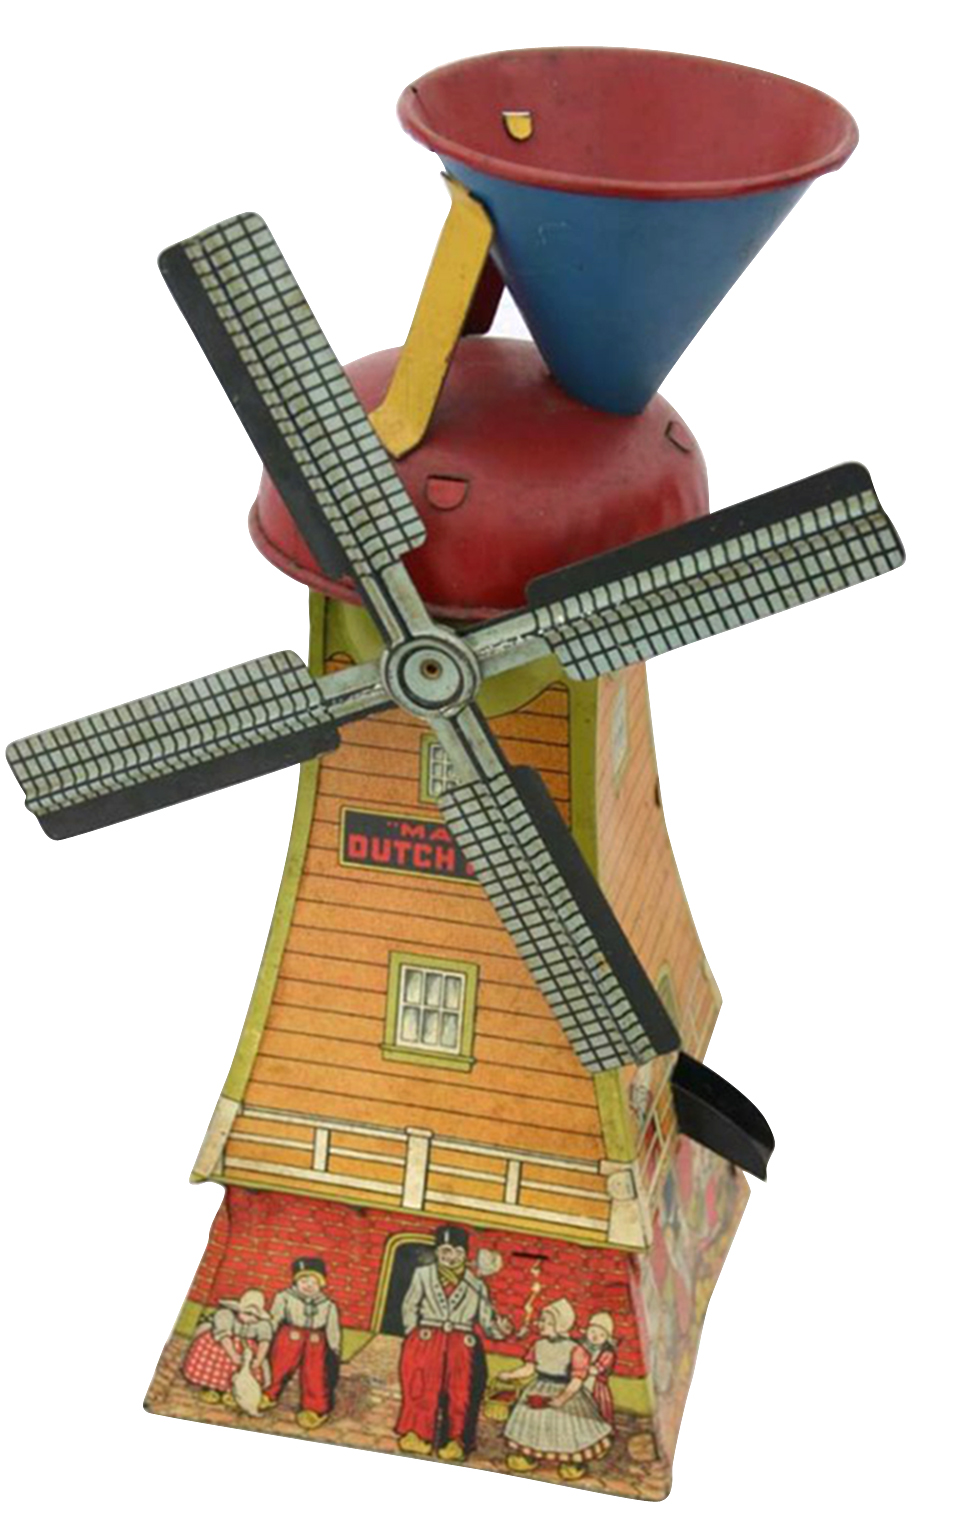 Dutch Windmills Iconic Models For Collectibles News